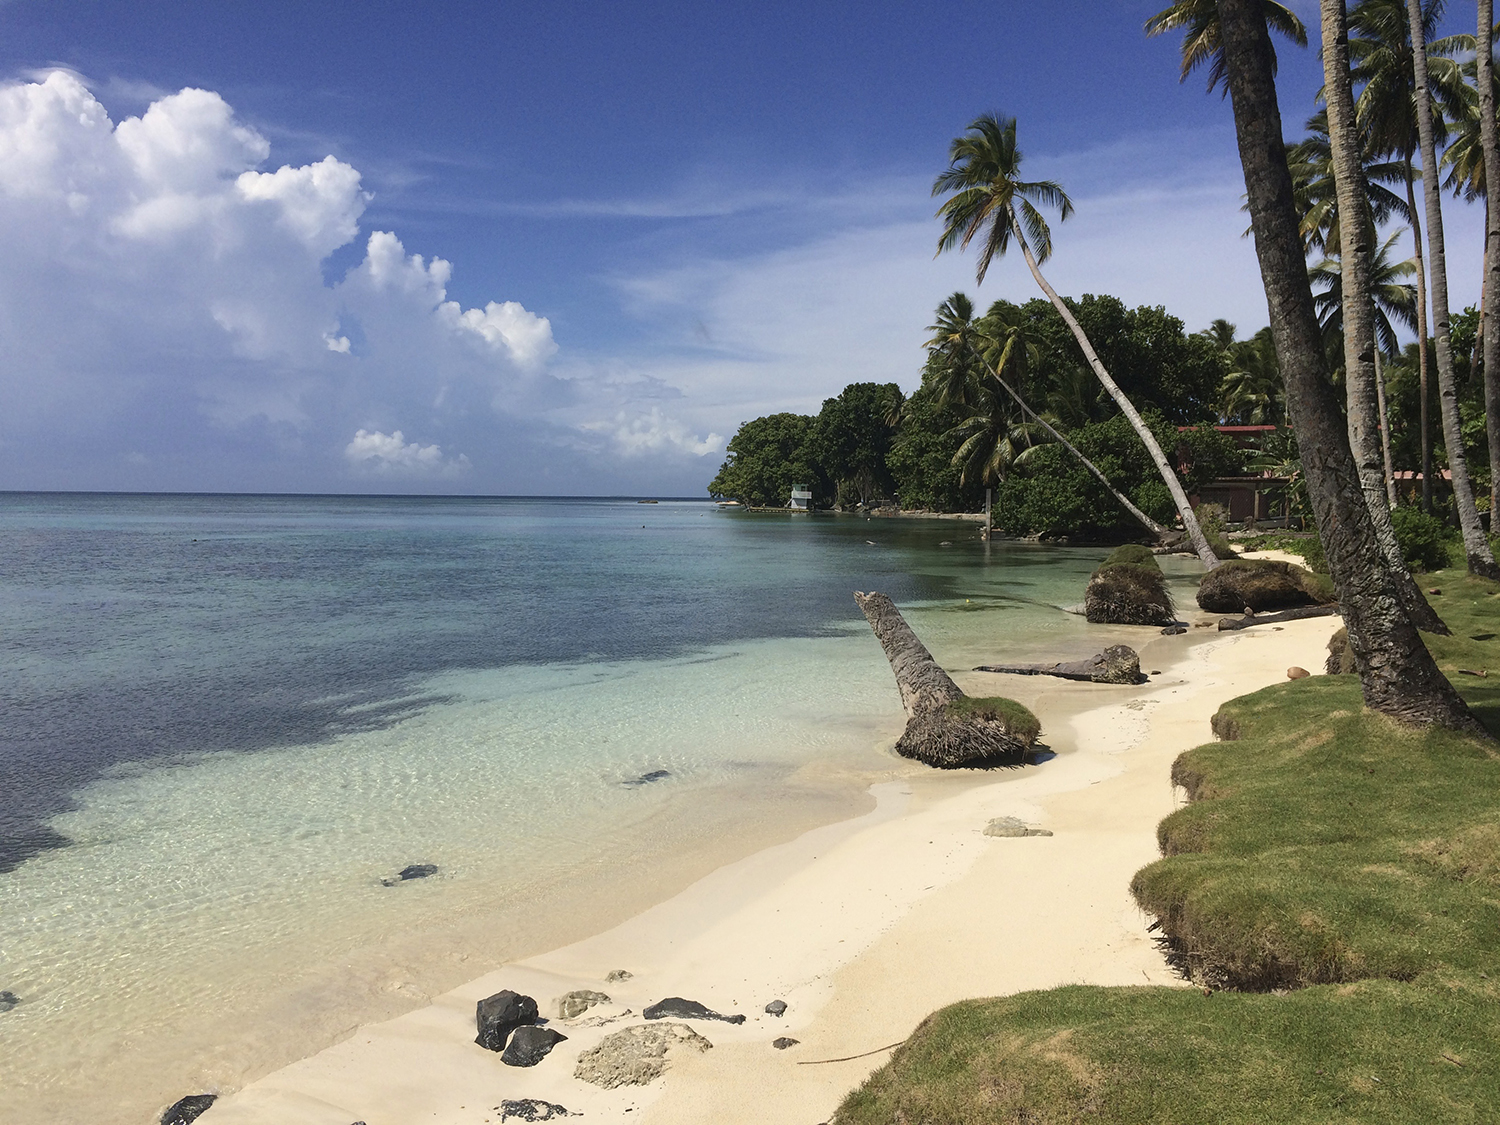 <p>The Blue Lagoon Resort is in a gated compound at the southern tip of Weno, and the most popular dive sites are a short boat ride away.</p>